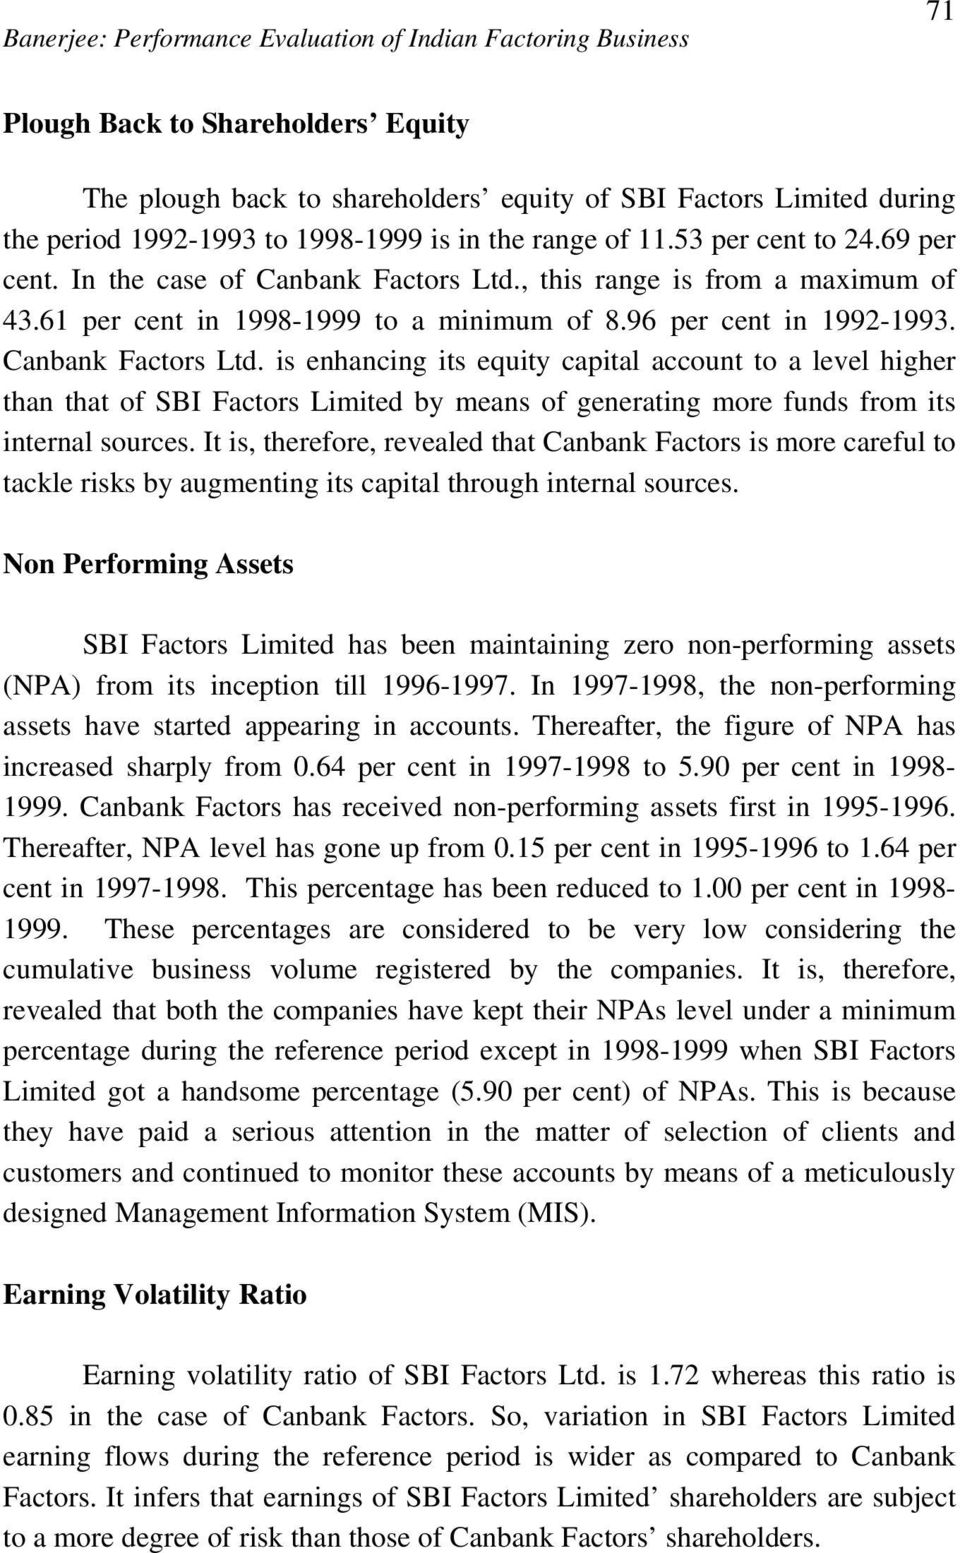 96 per cent in 1992-1993. Canbank Factors Ltd. is enhancing its equity capital account to a level higher than that of SBI Factors Limited by means of generating more funds from its internal sources.